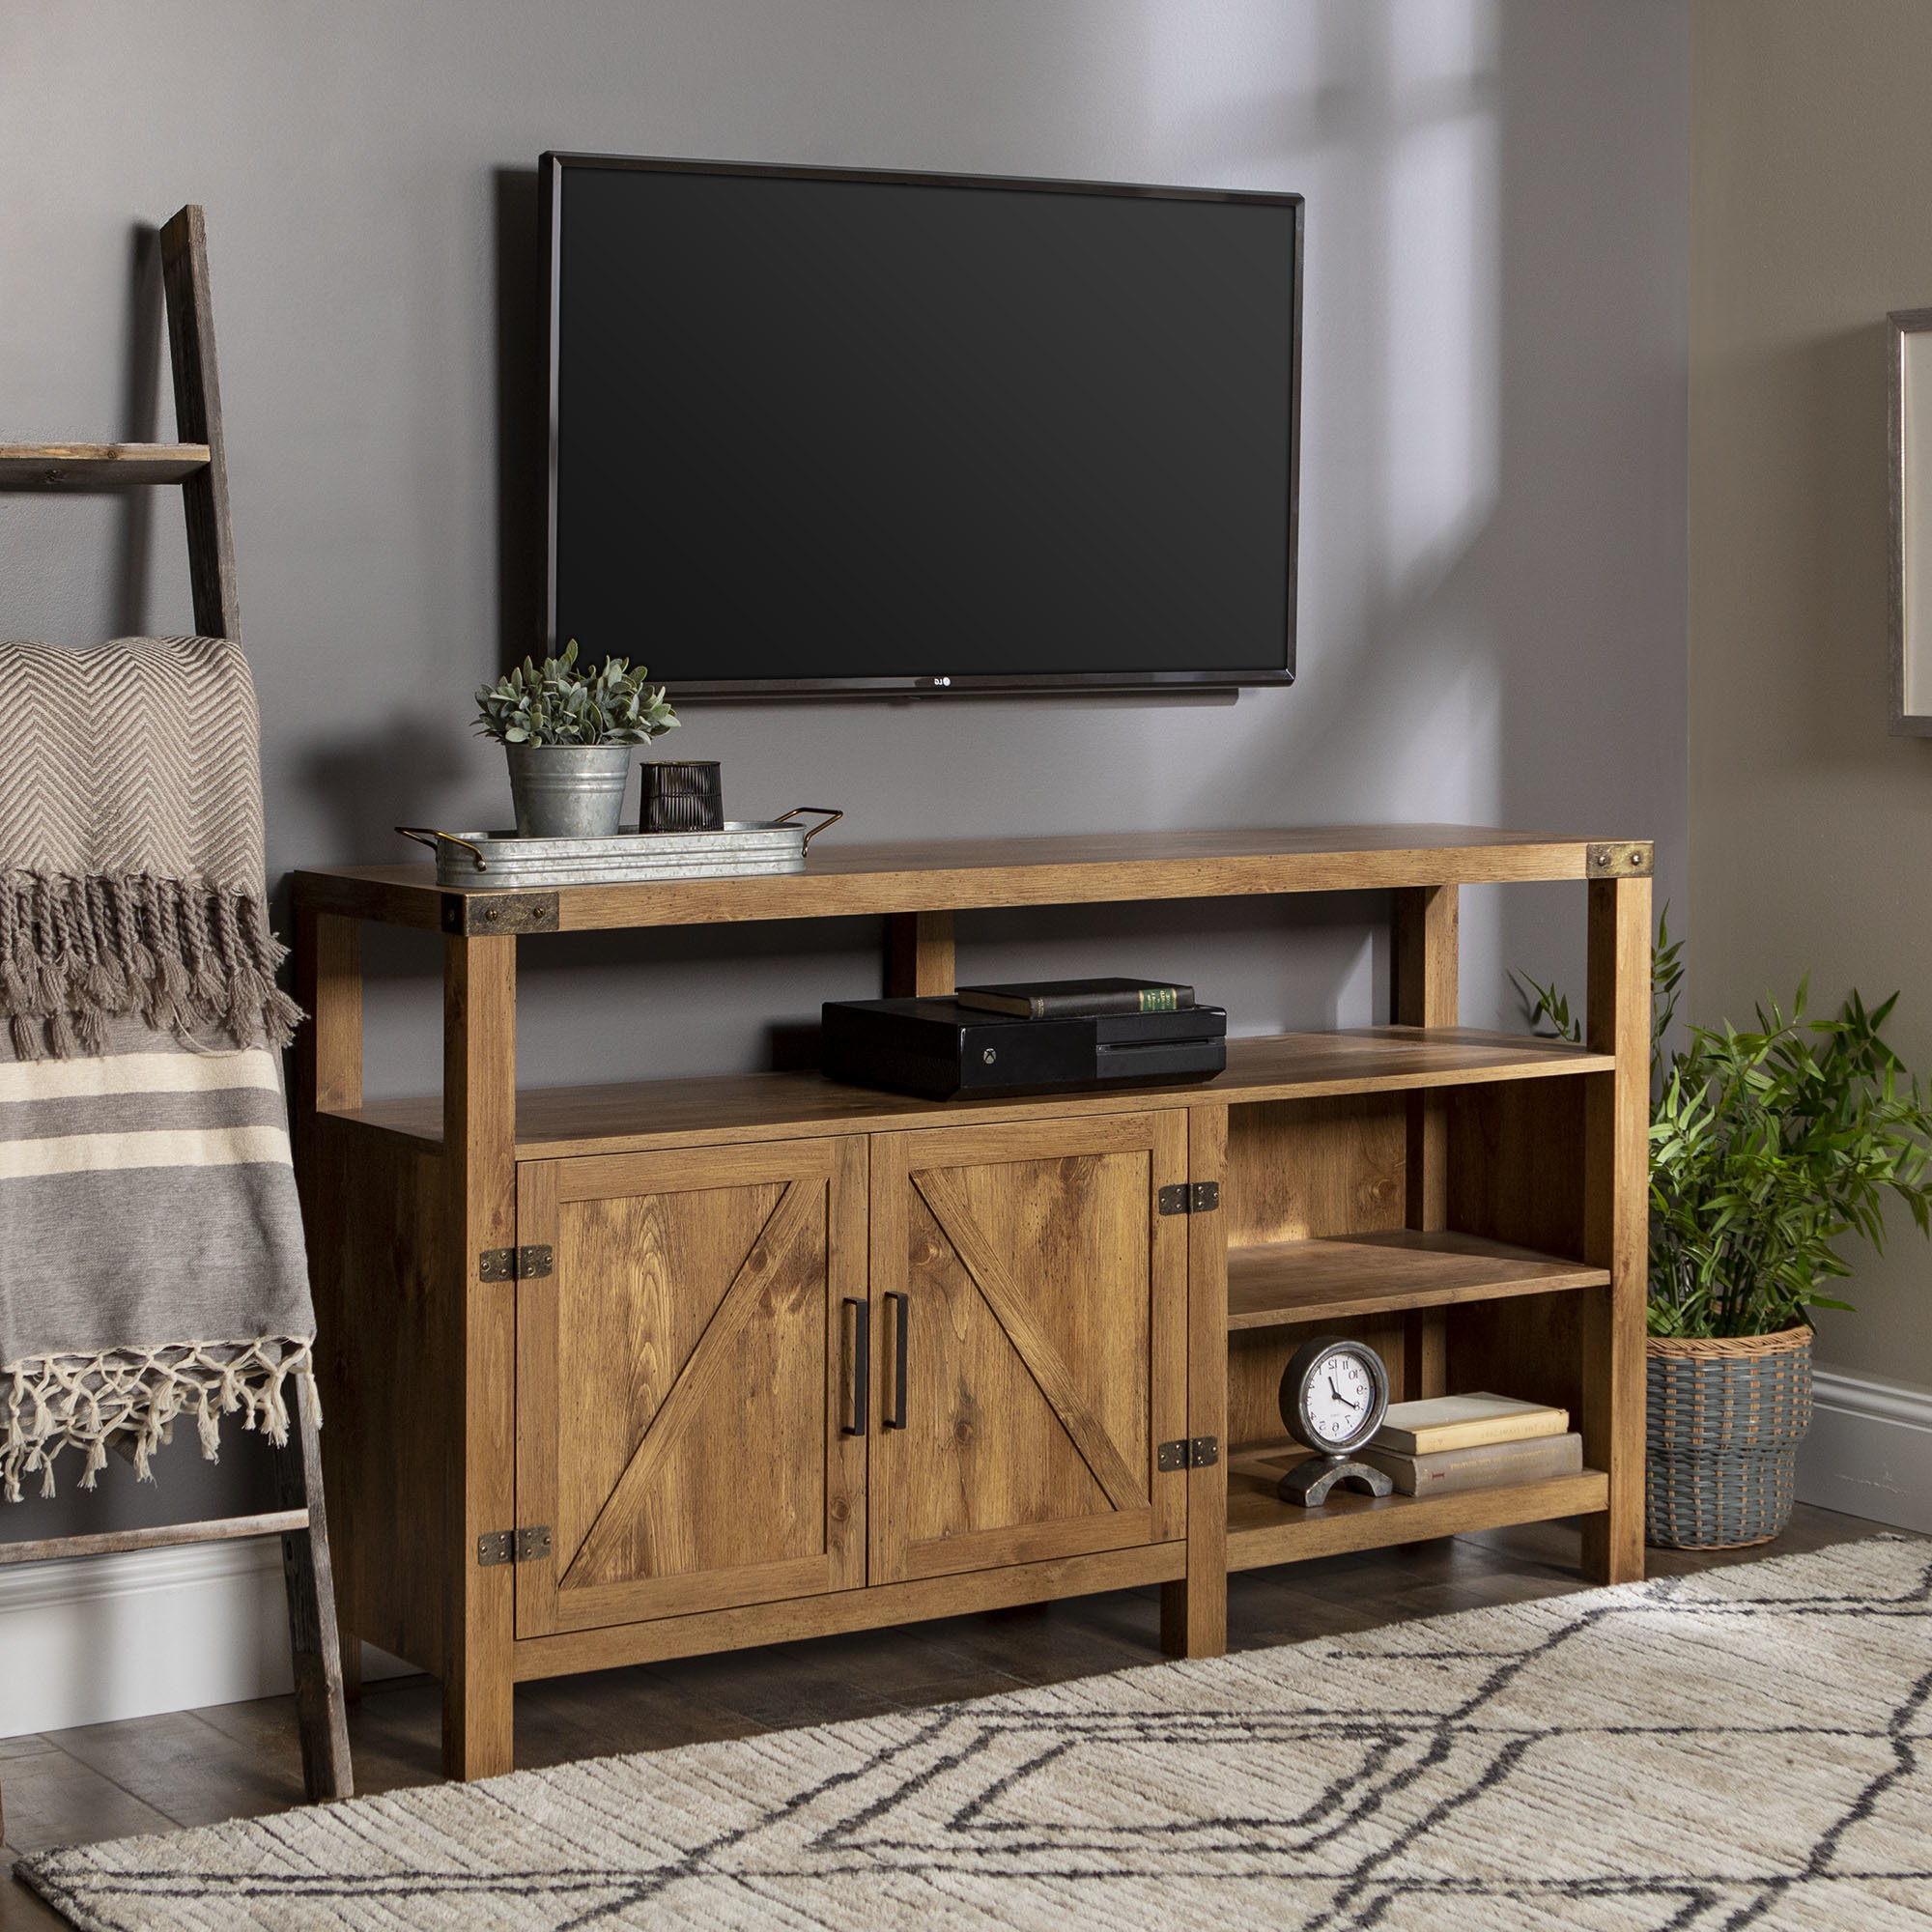 End Table And Tv Stand Set | Wayfair Regarding Combs 63 Inch Tv Stands (View 12 of 20)